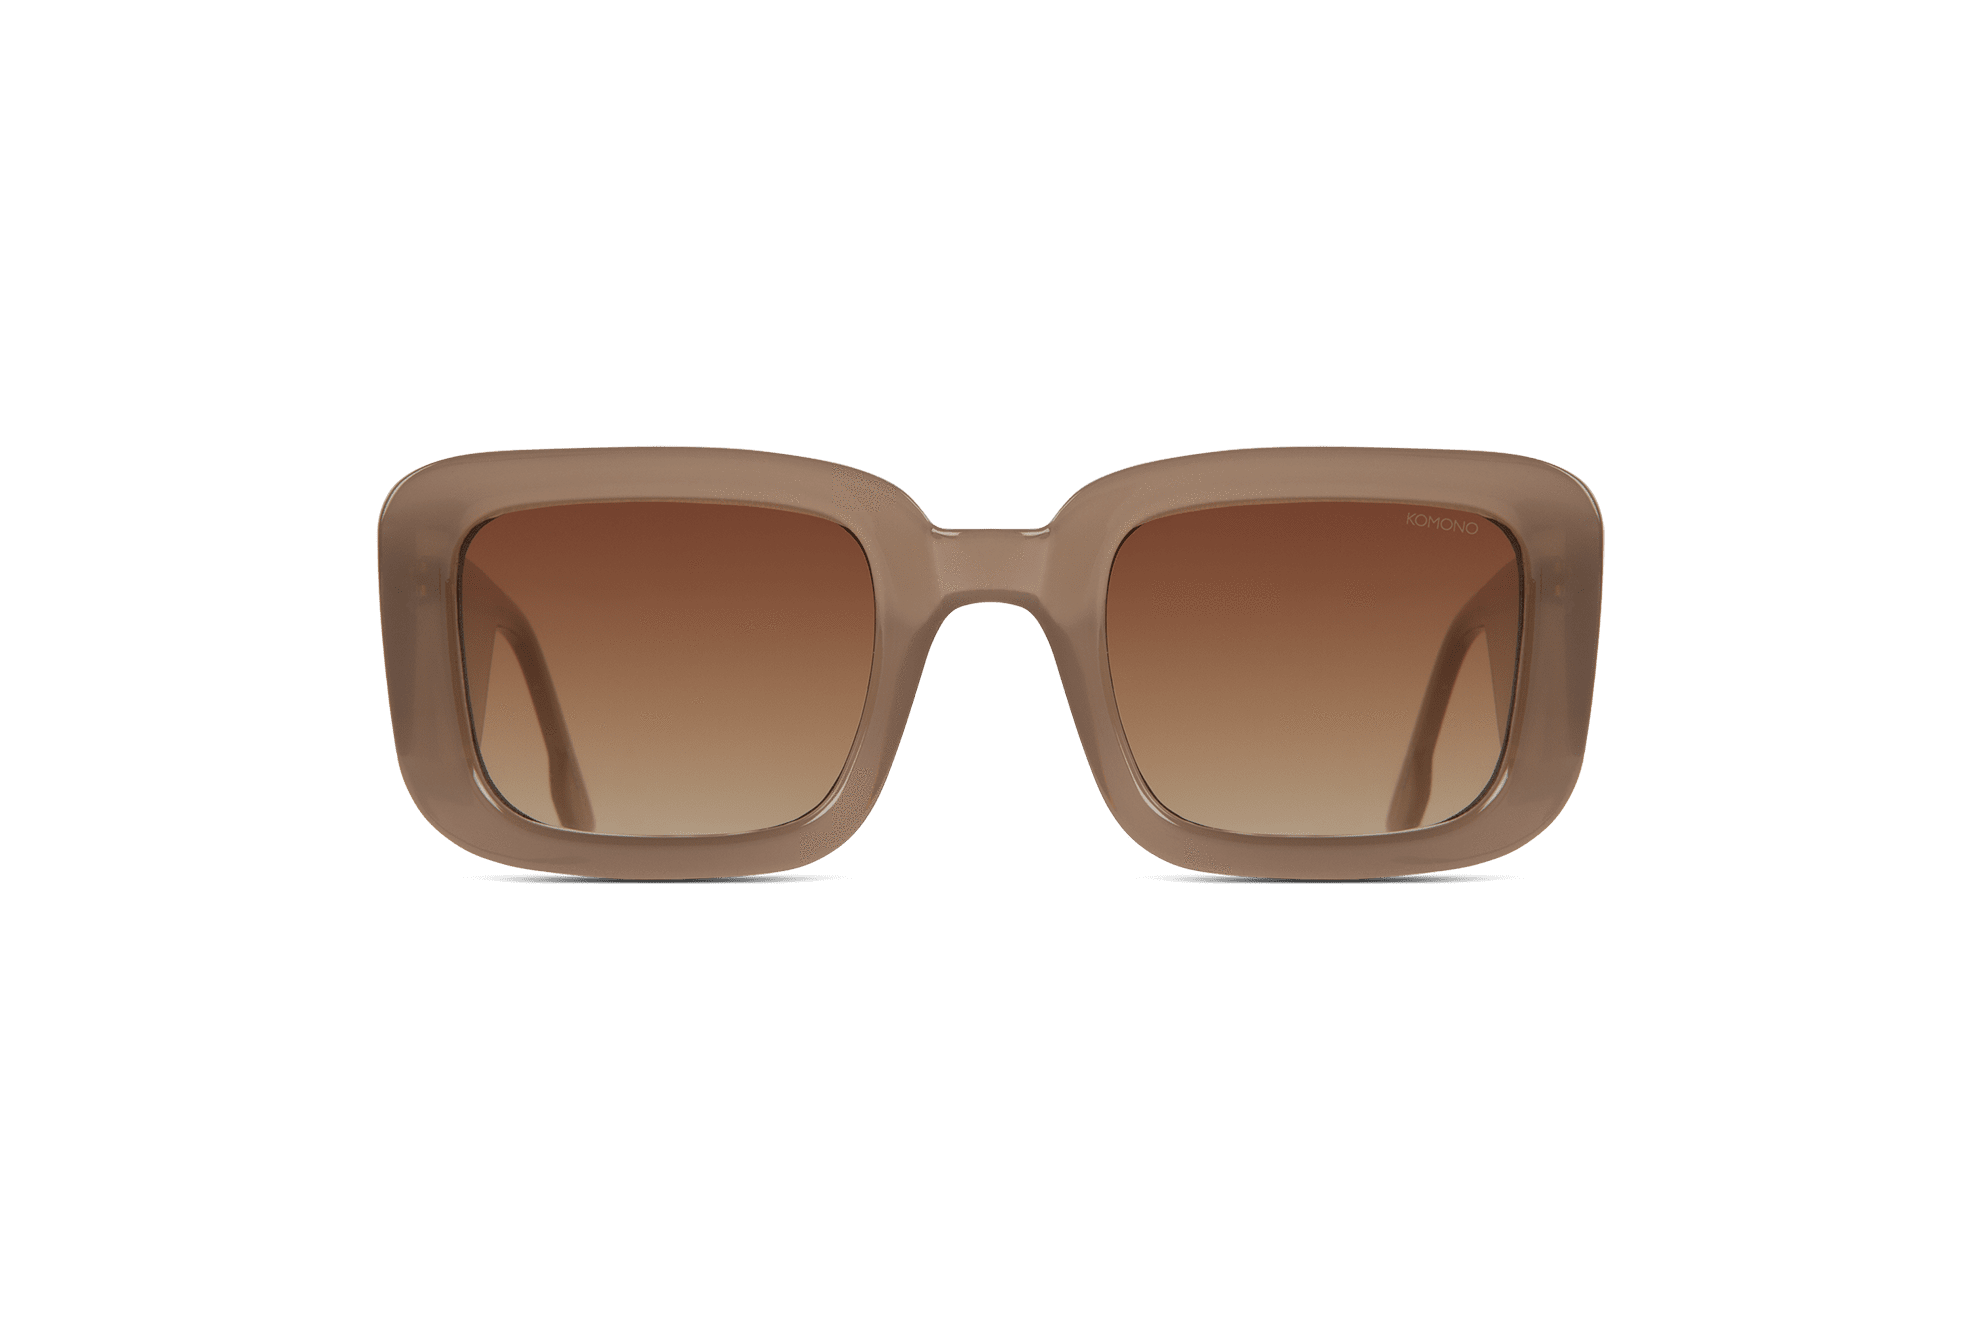 Komono - Avery Sahara Sunglasses / Gradient Brown Lenses